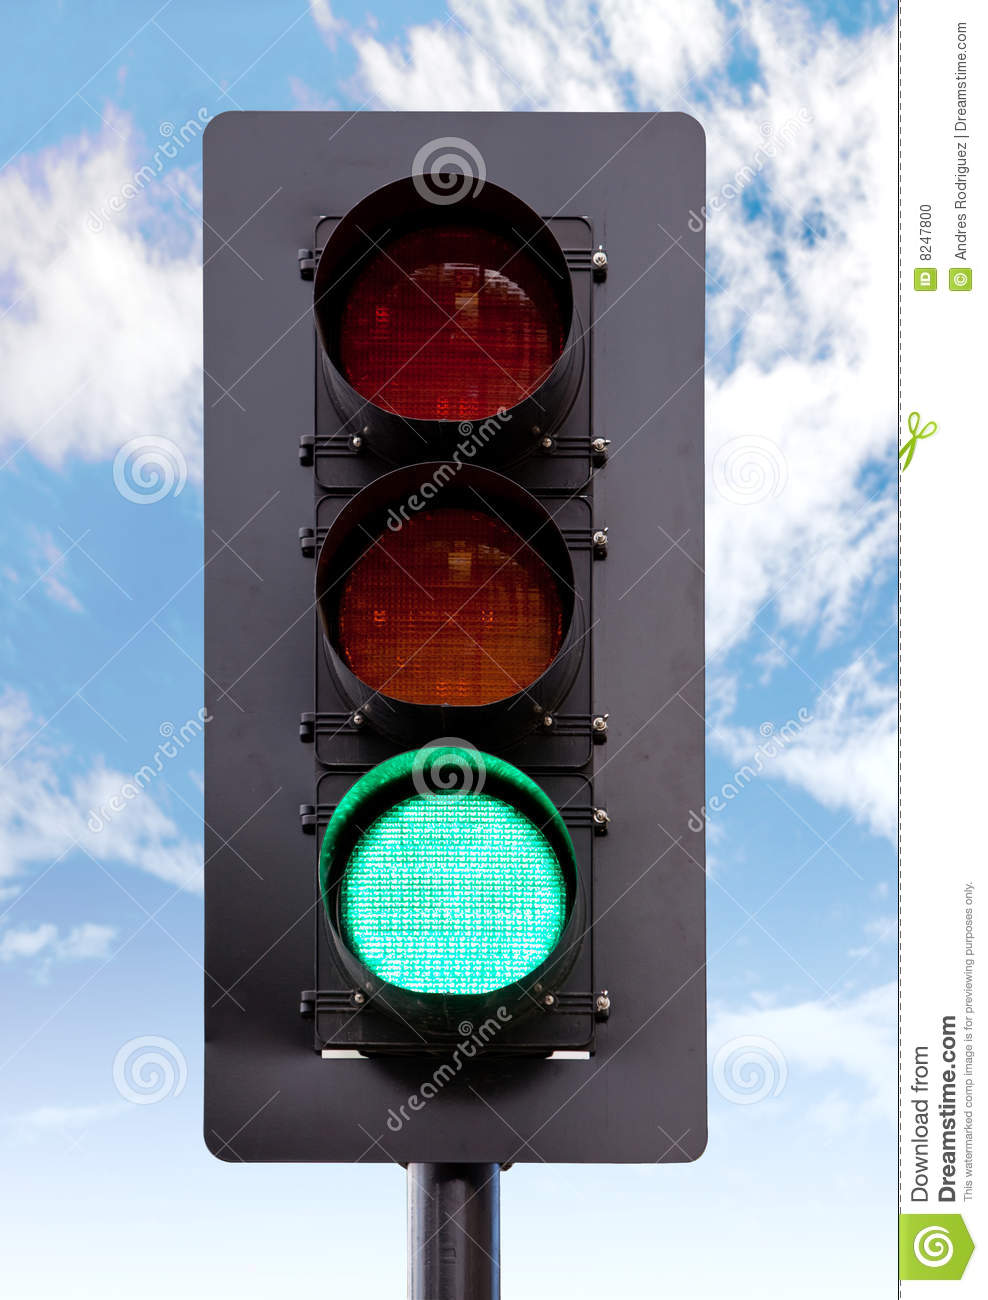 Green Light Stock Photo - Image: 8247800